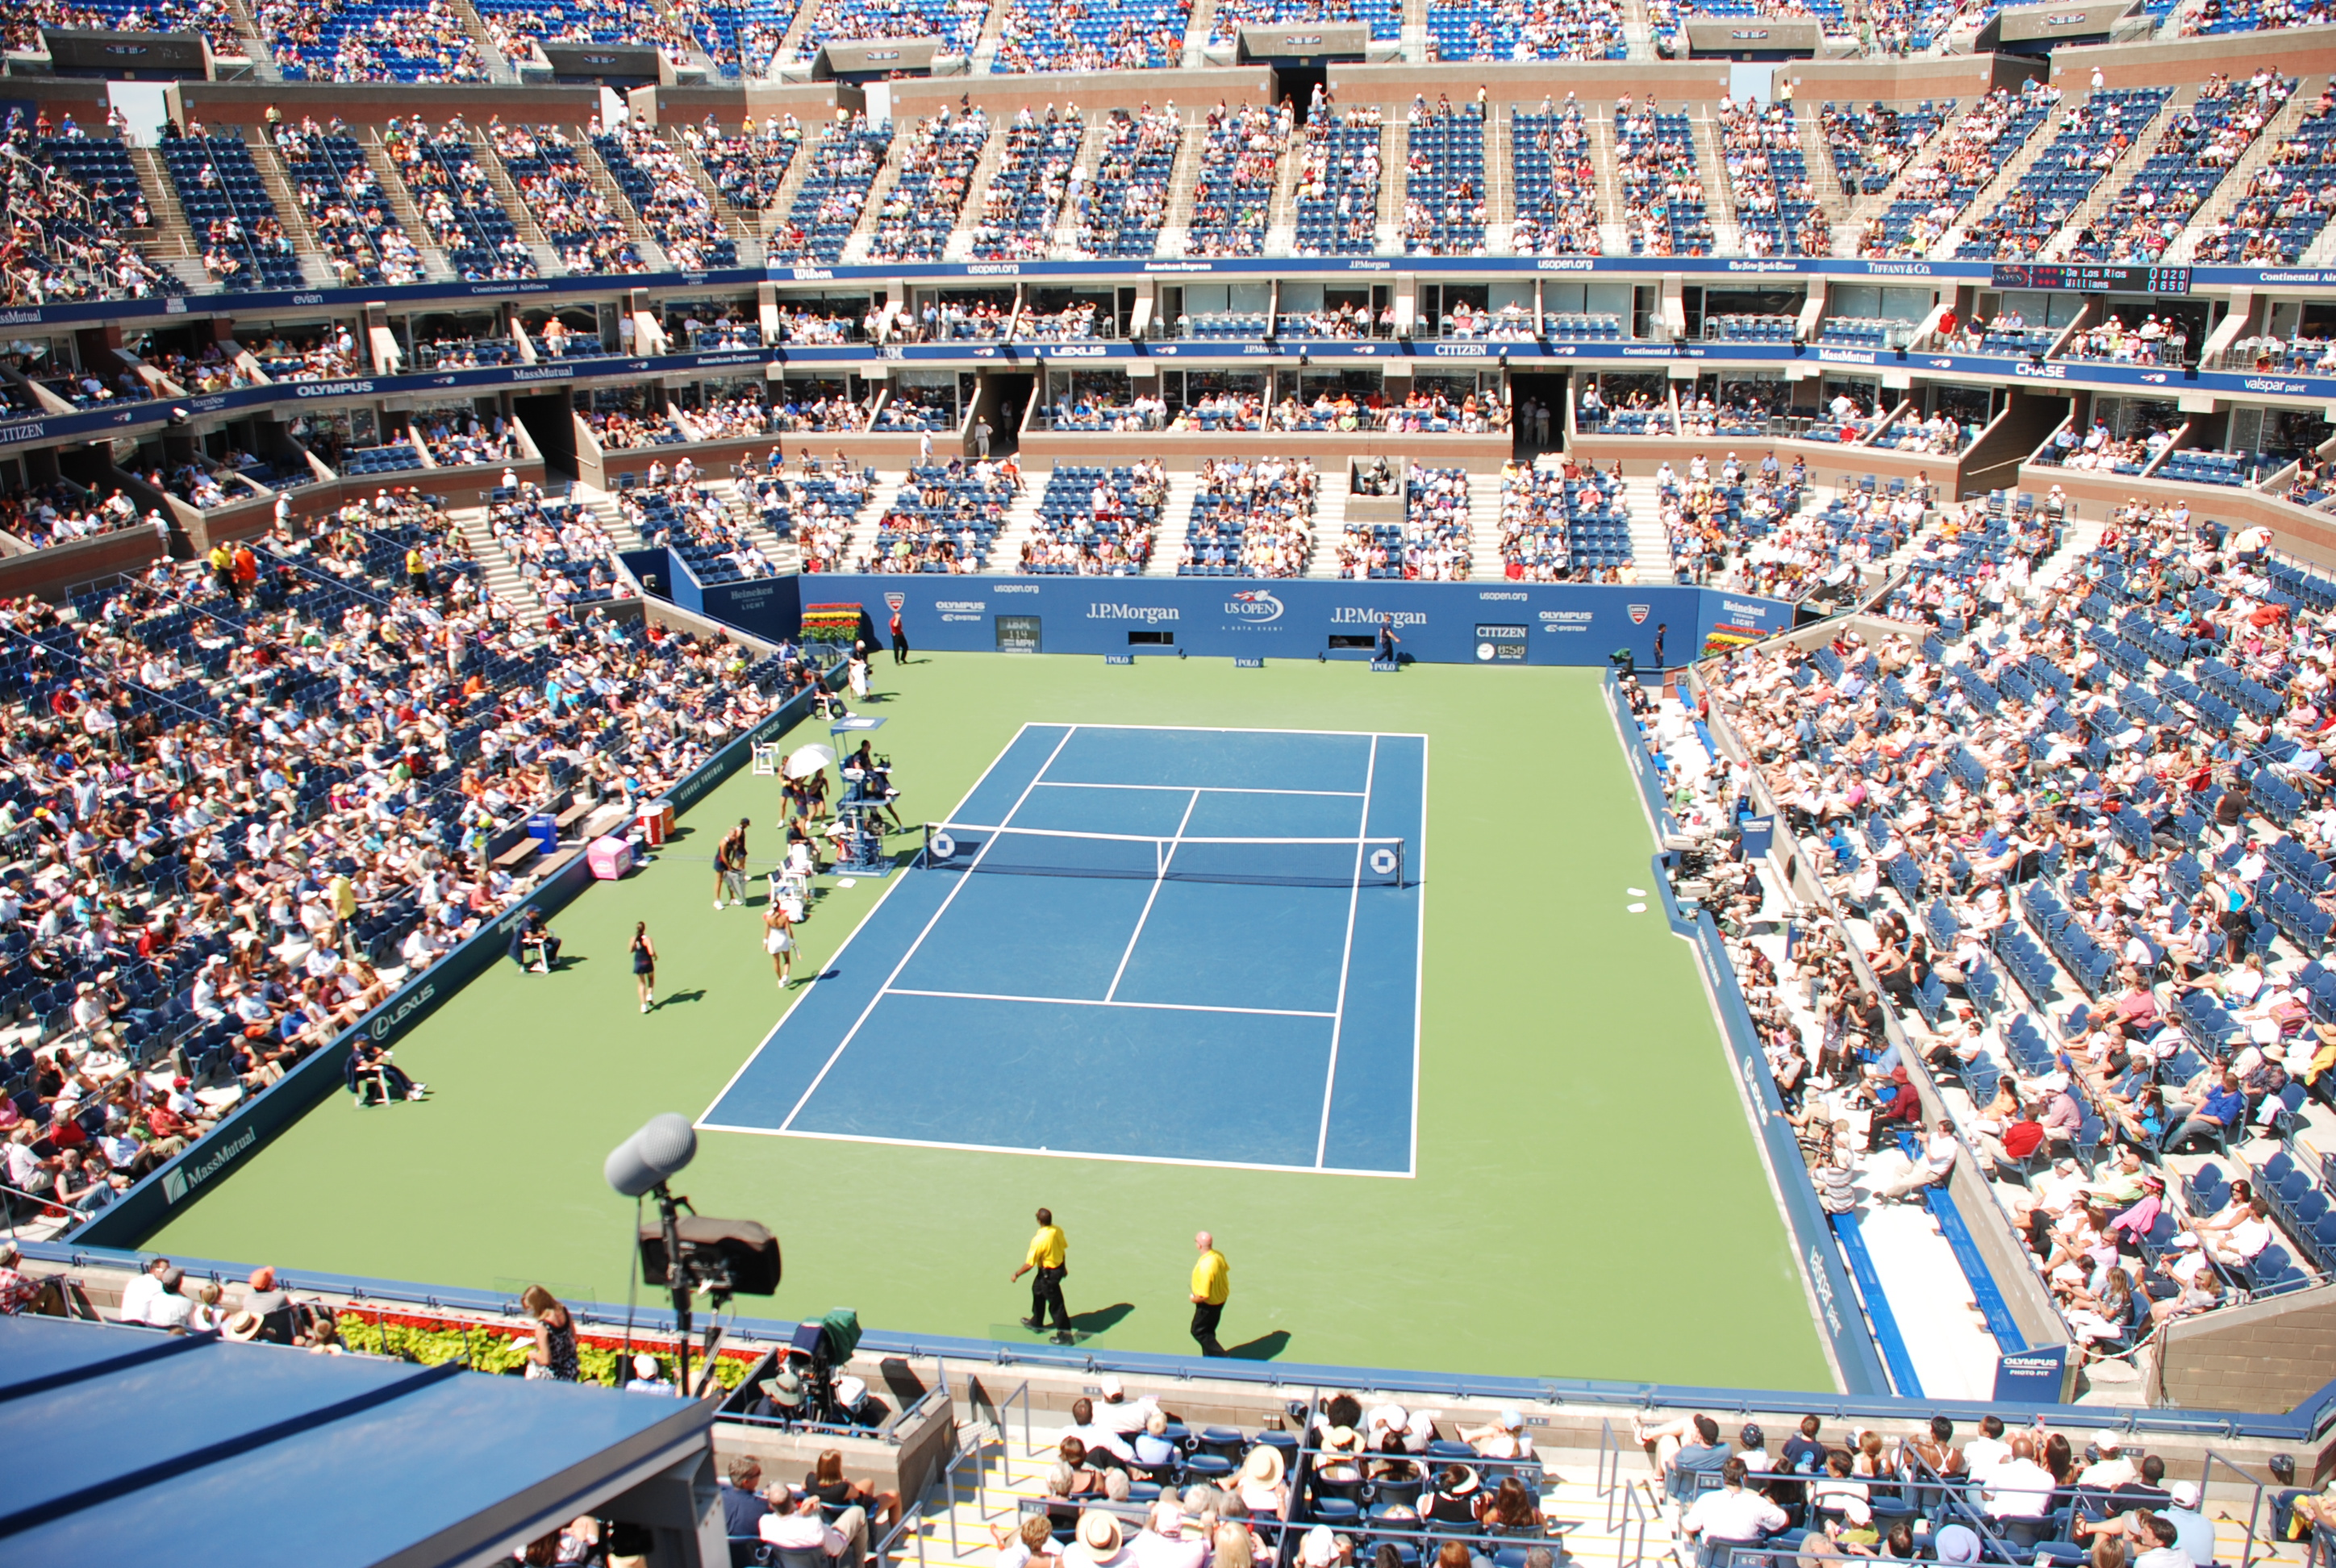 Crowded arena for tennis match on a blue court.